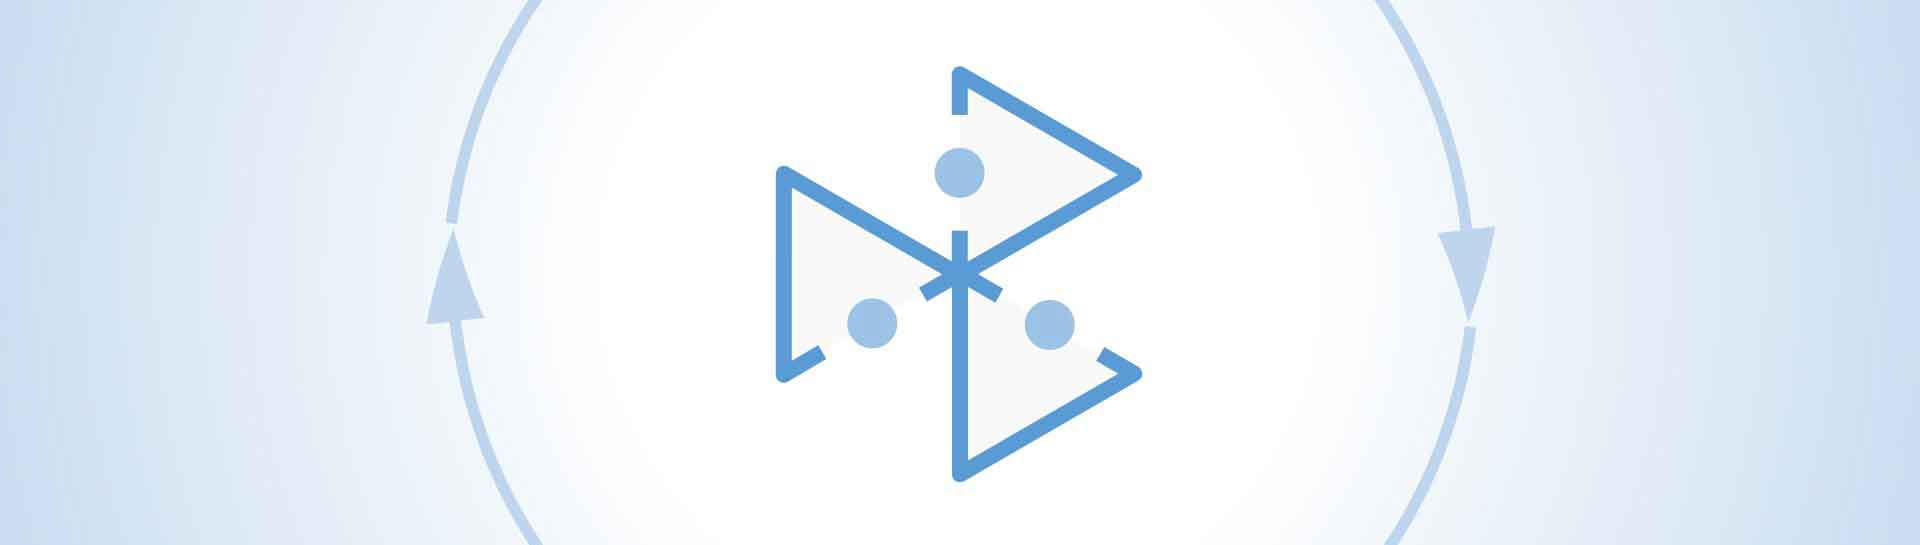 logo of GeoChemTec within circle of two light blue arrows